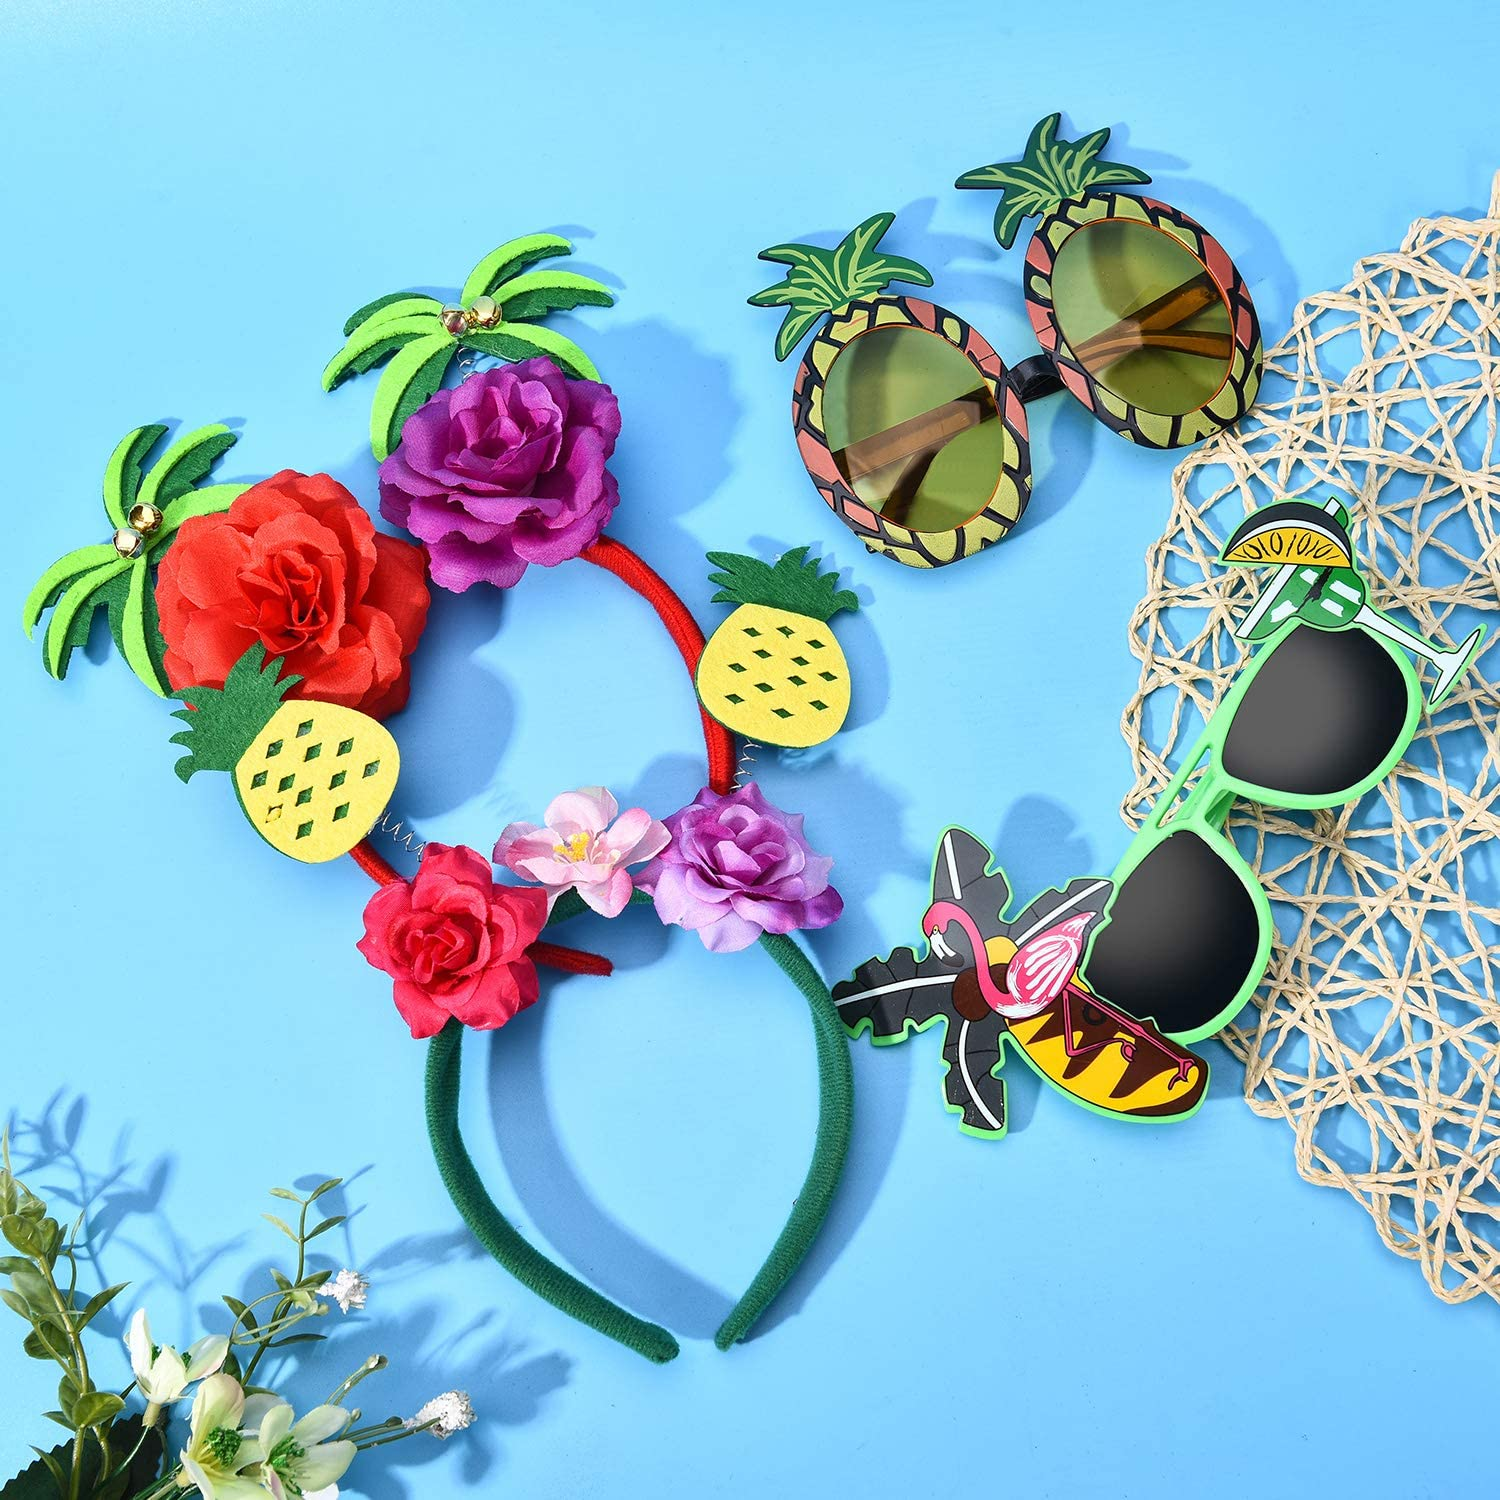 4 Pieces Hawaiian Party Sunglasses and Headbands Set Includes Tropical Summer Sunglasses Hawaiian Party Headbands with Palm Tree and Pineapple Design